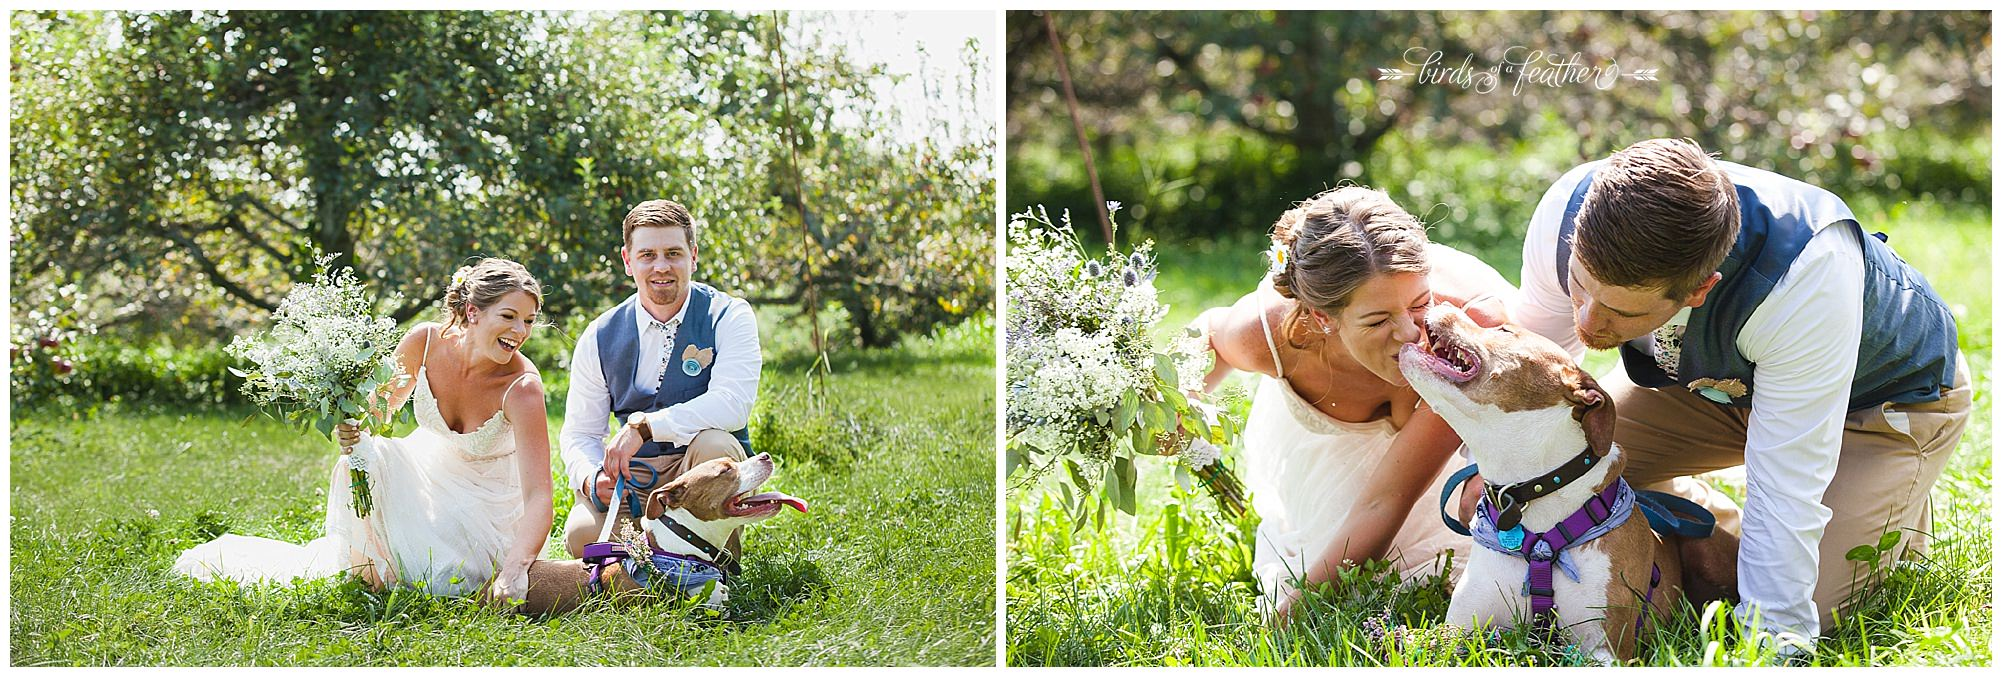 Birds of a Feather Photography Rodale Institute Kutztown Pa Wedding Photographer 14